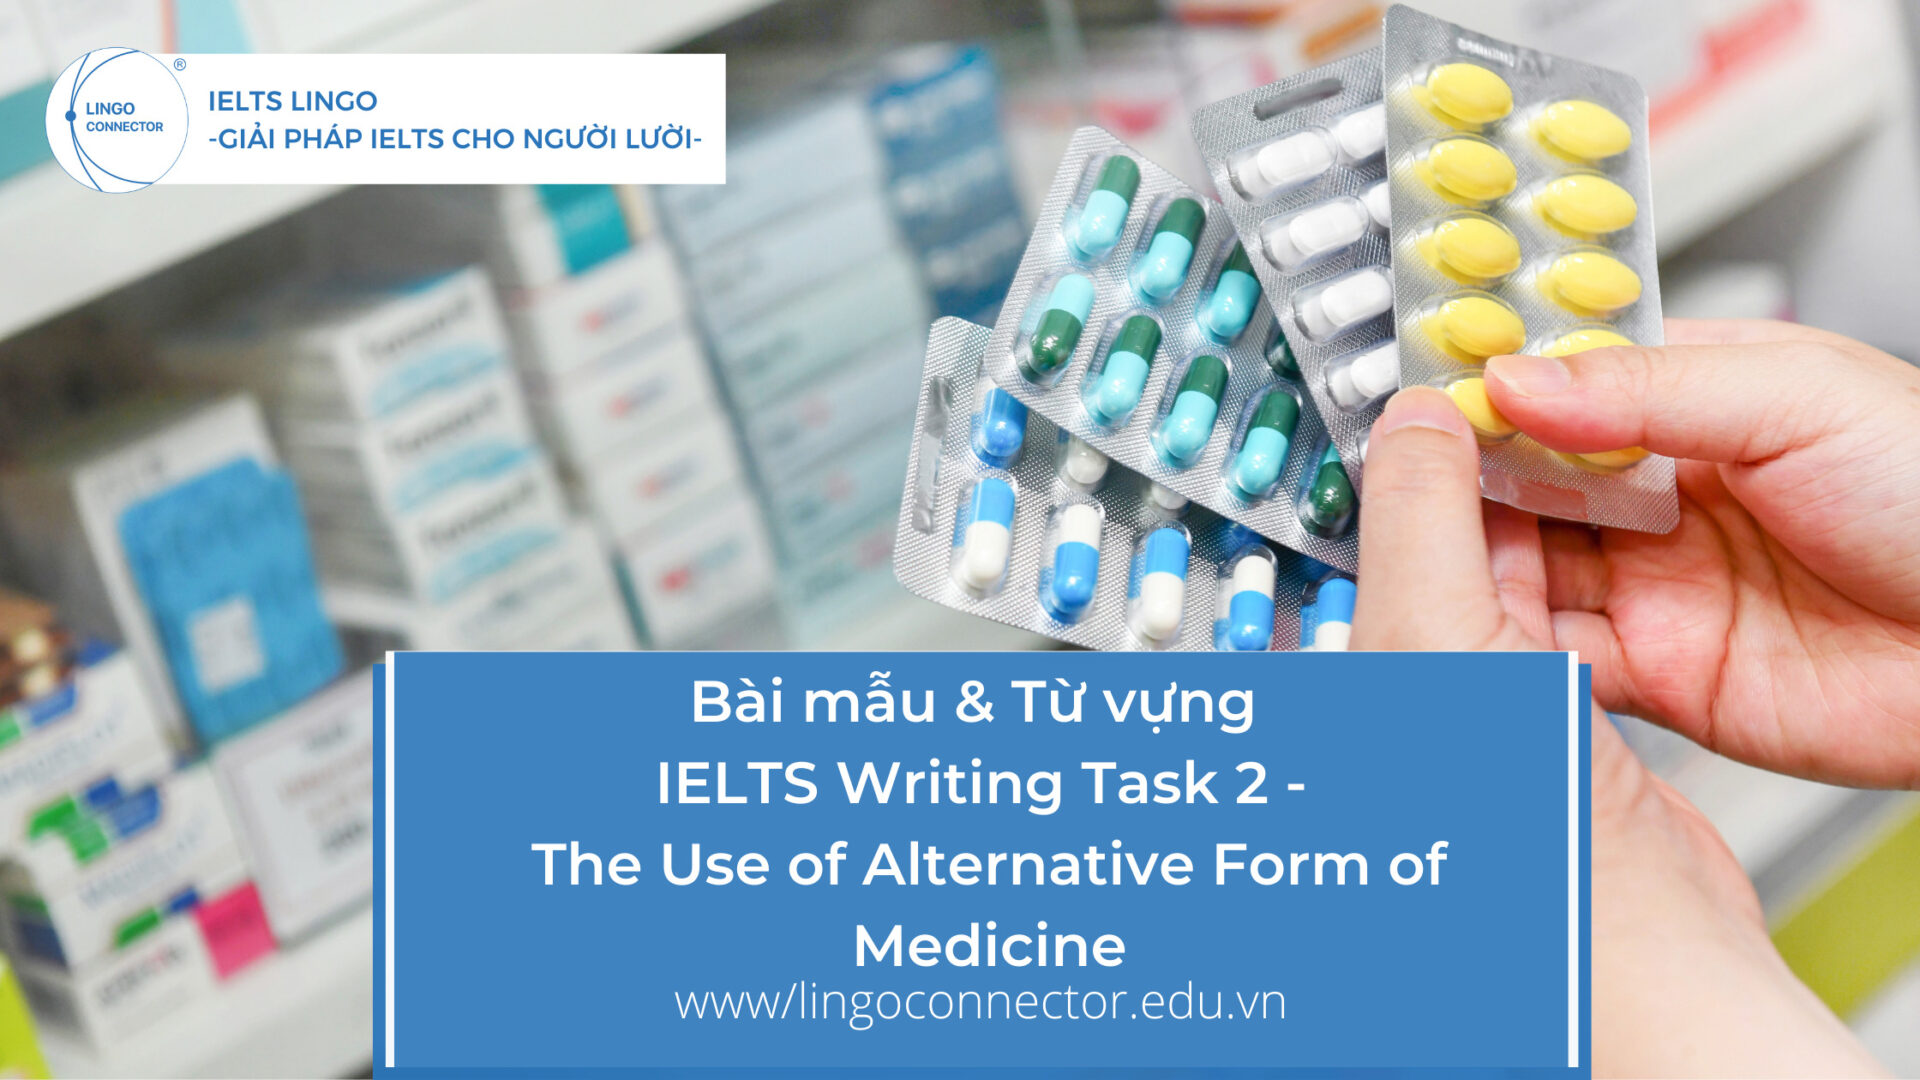 Bài mẫu & Từ vựng IELTS Writing Task 2 - Currently There is a Trend Towards the Use of Alternative Form of Medicine